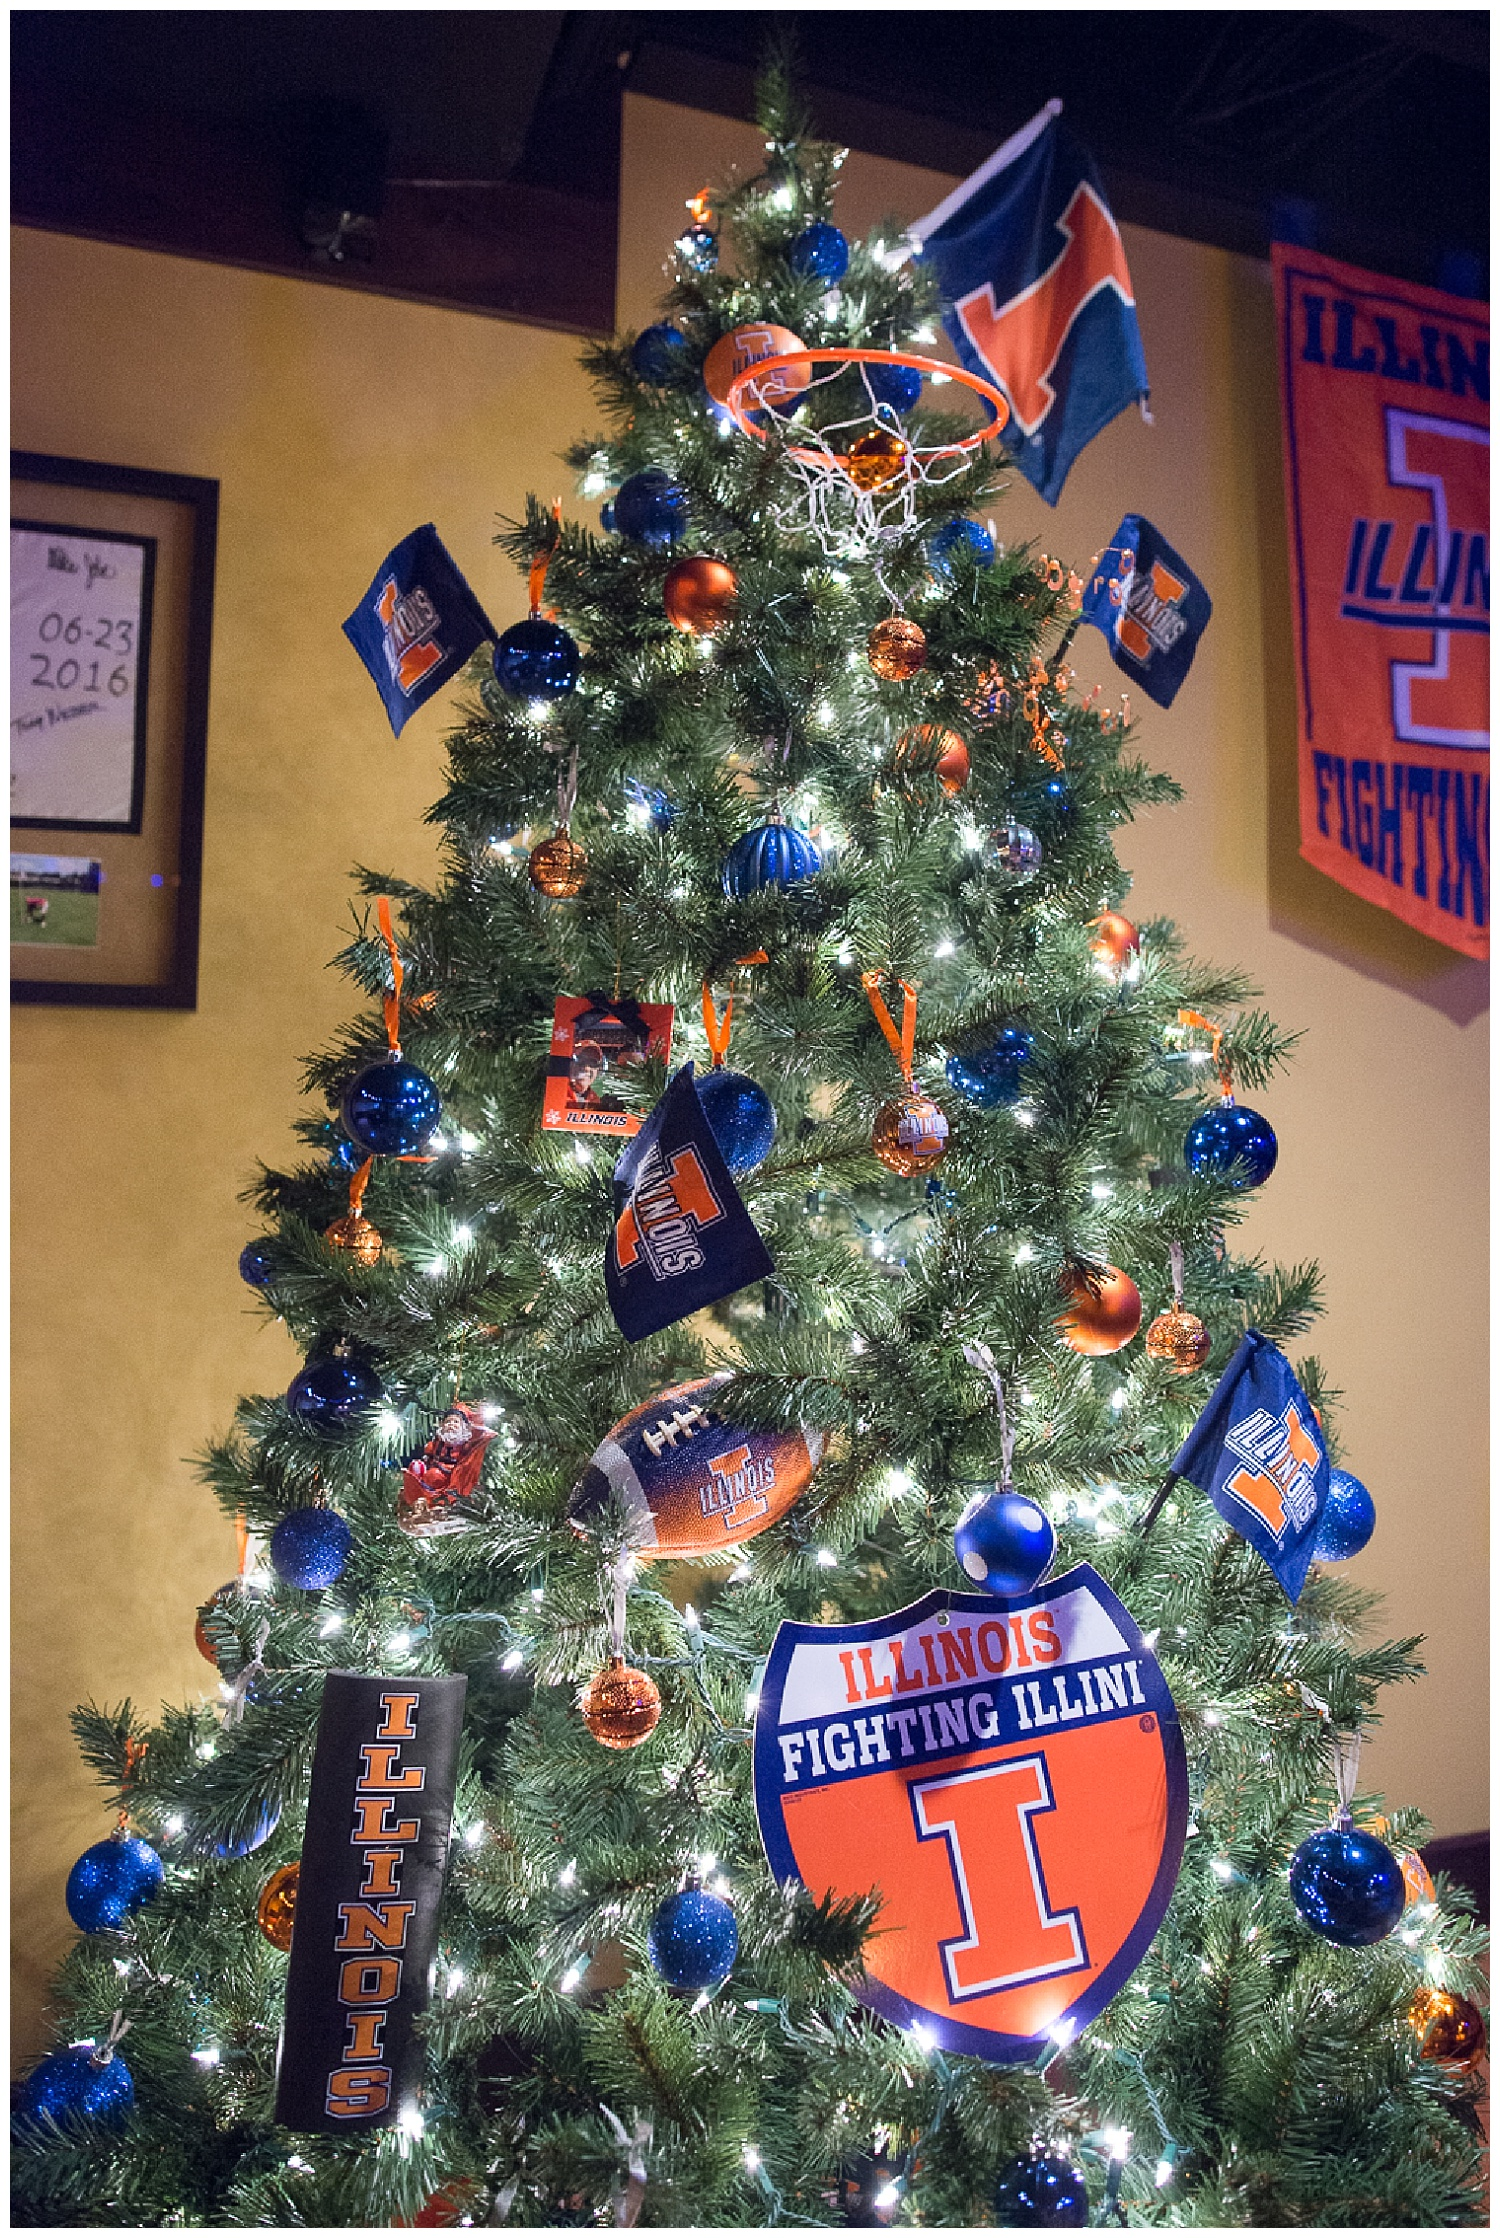 The U of I Tree is in the basement ready for the Braggin' Rights game.